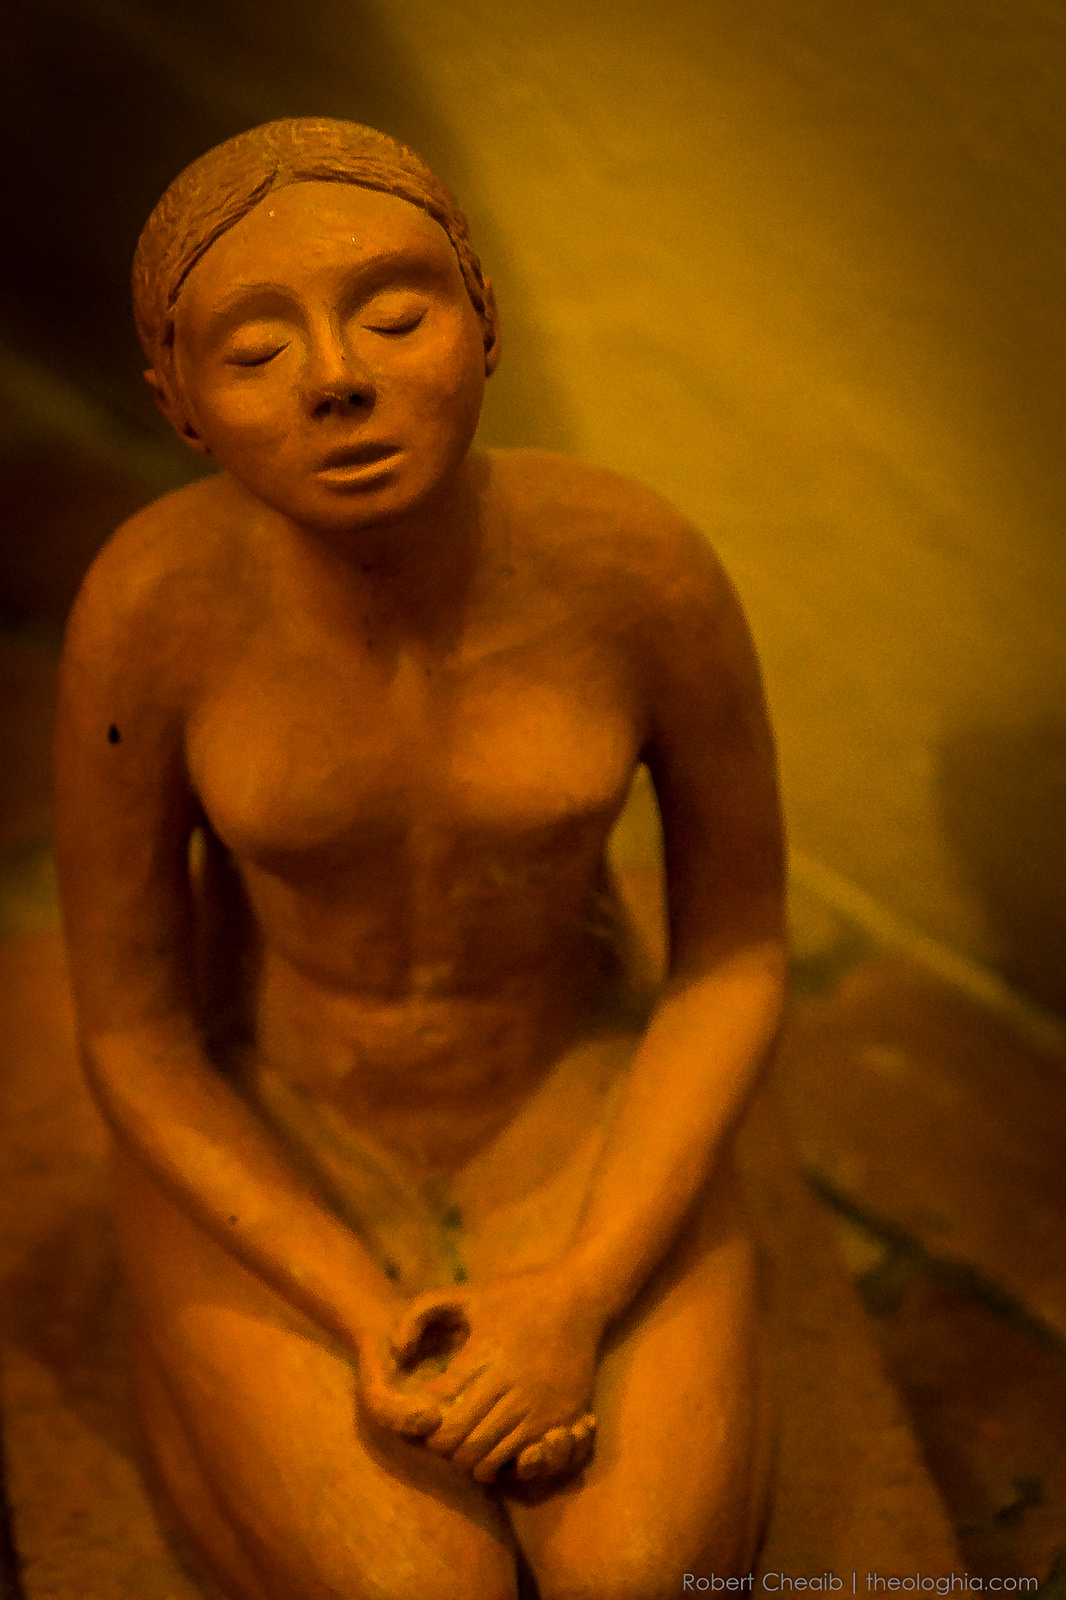 Clay statue of a woman in prayer and meditation